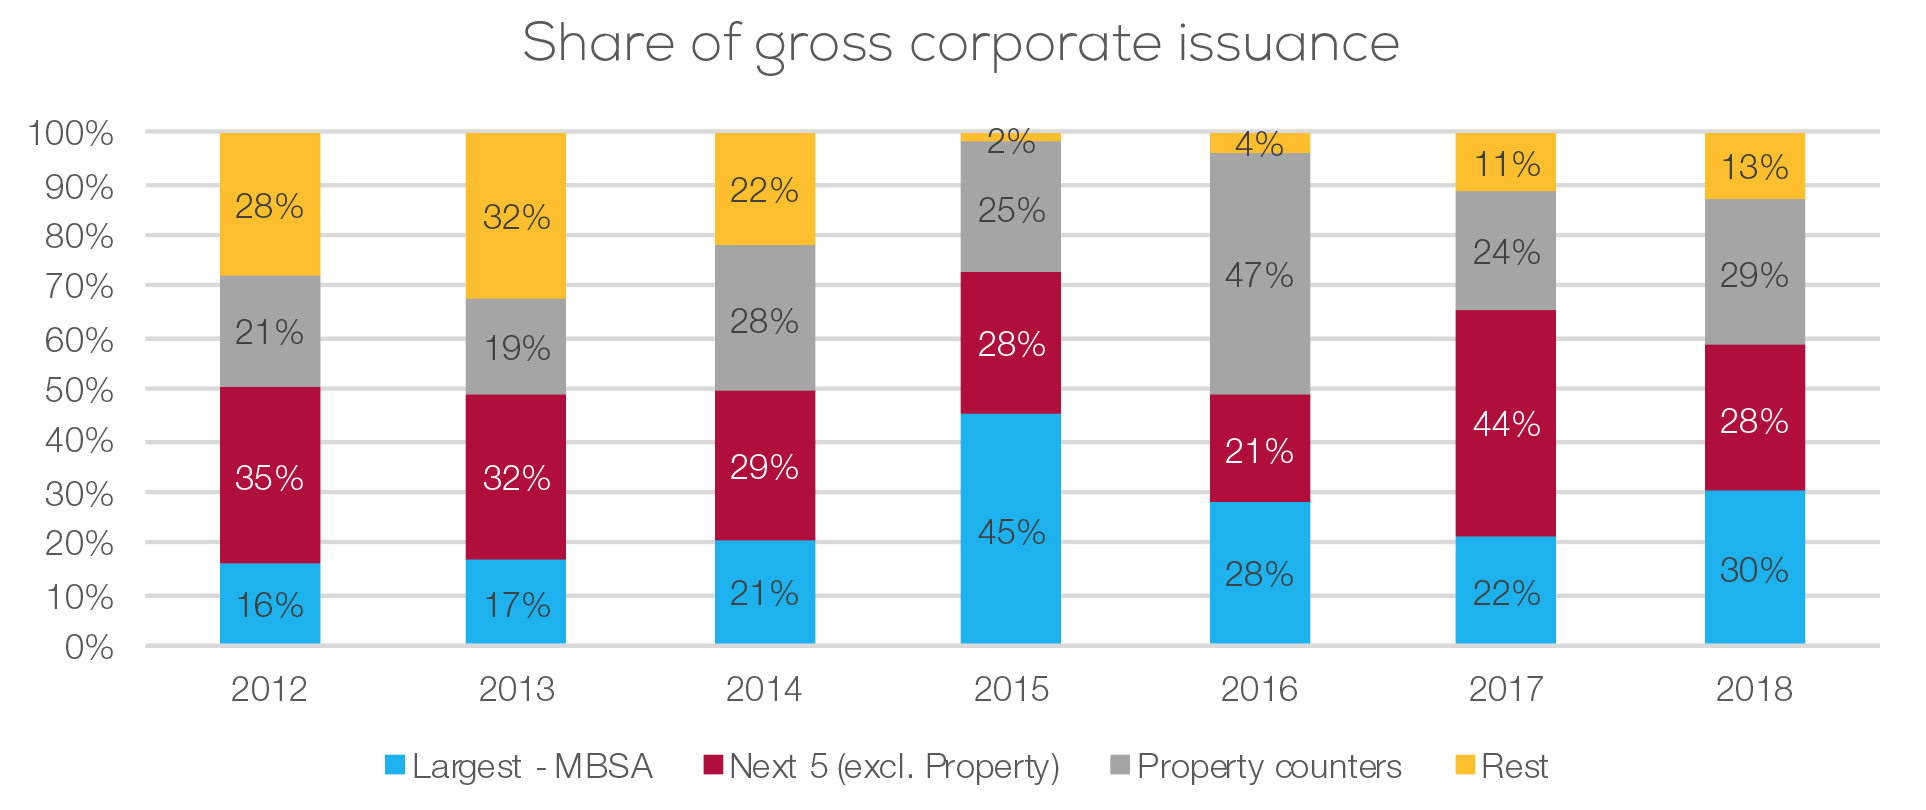 Share of gross corporate issuance